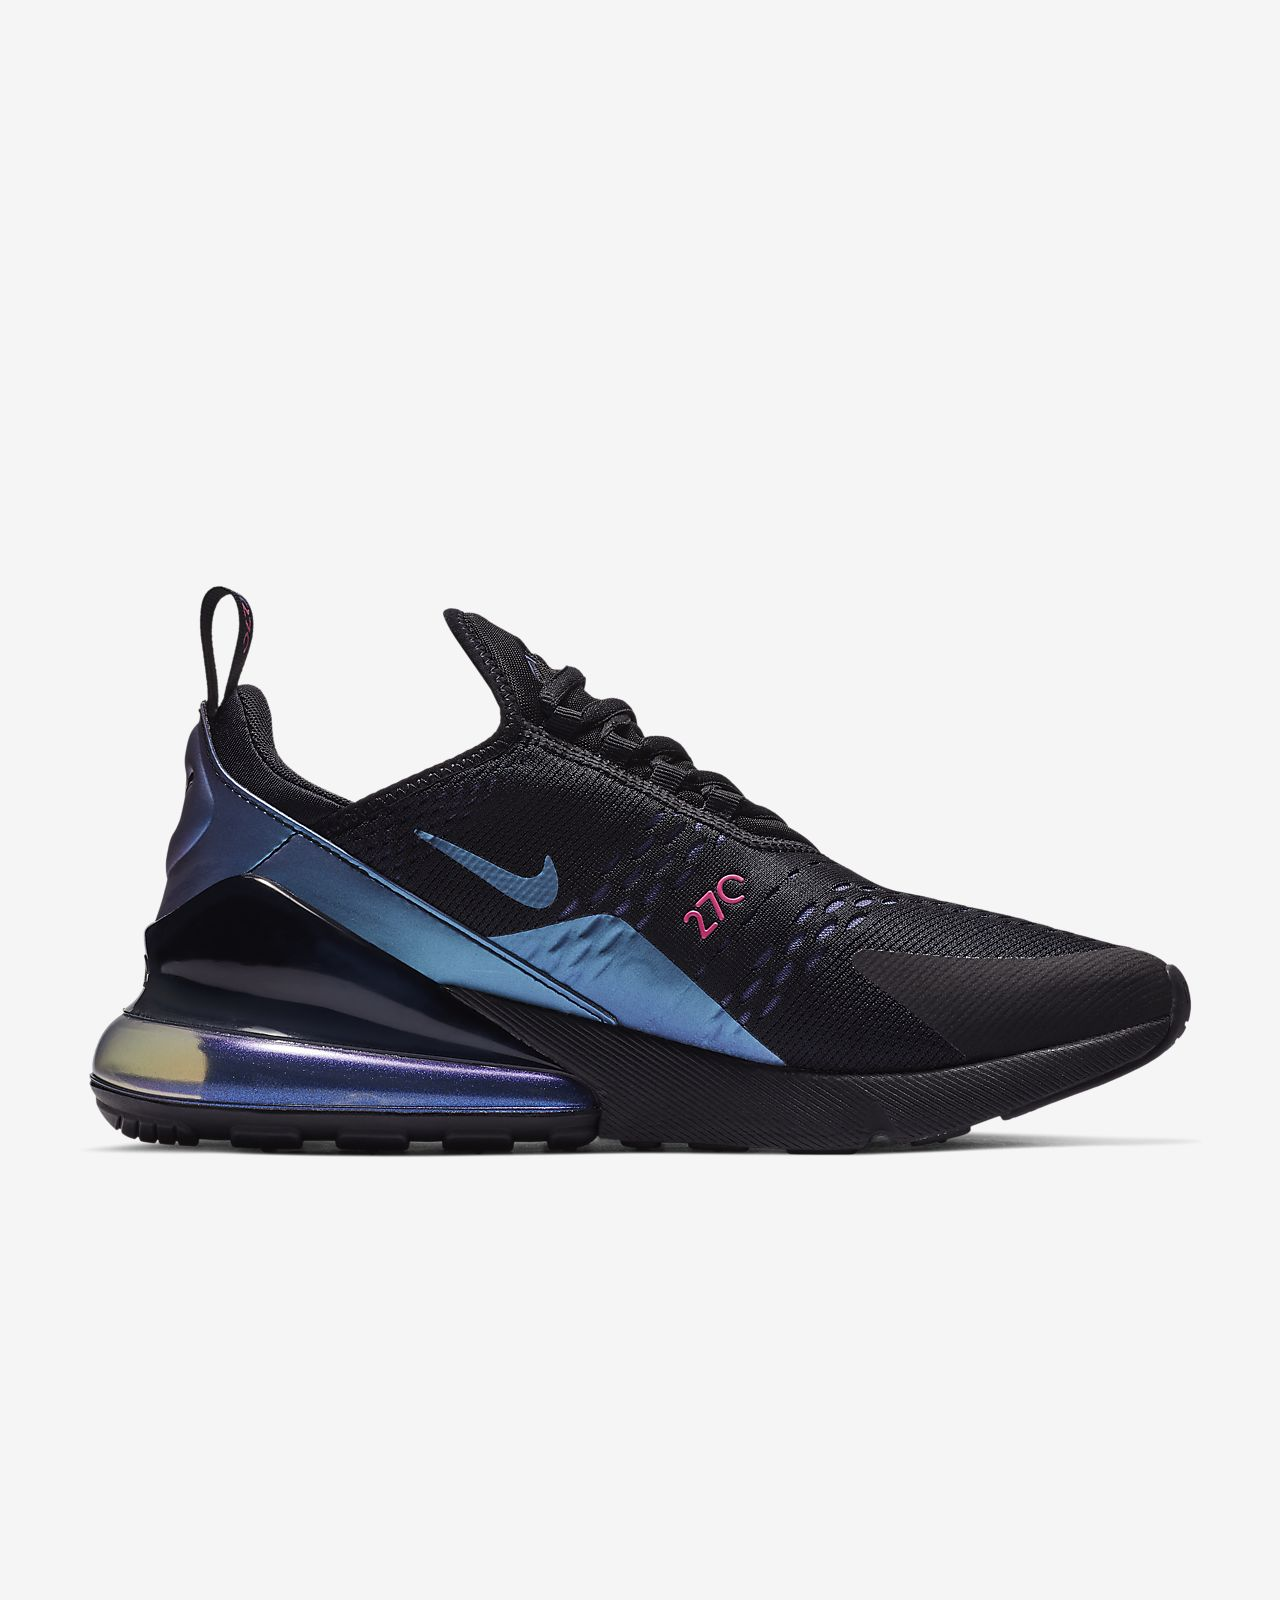 b5b3dd16512 Nike Air Max 270 Men s Shoe. Nike.com GB